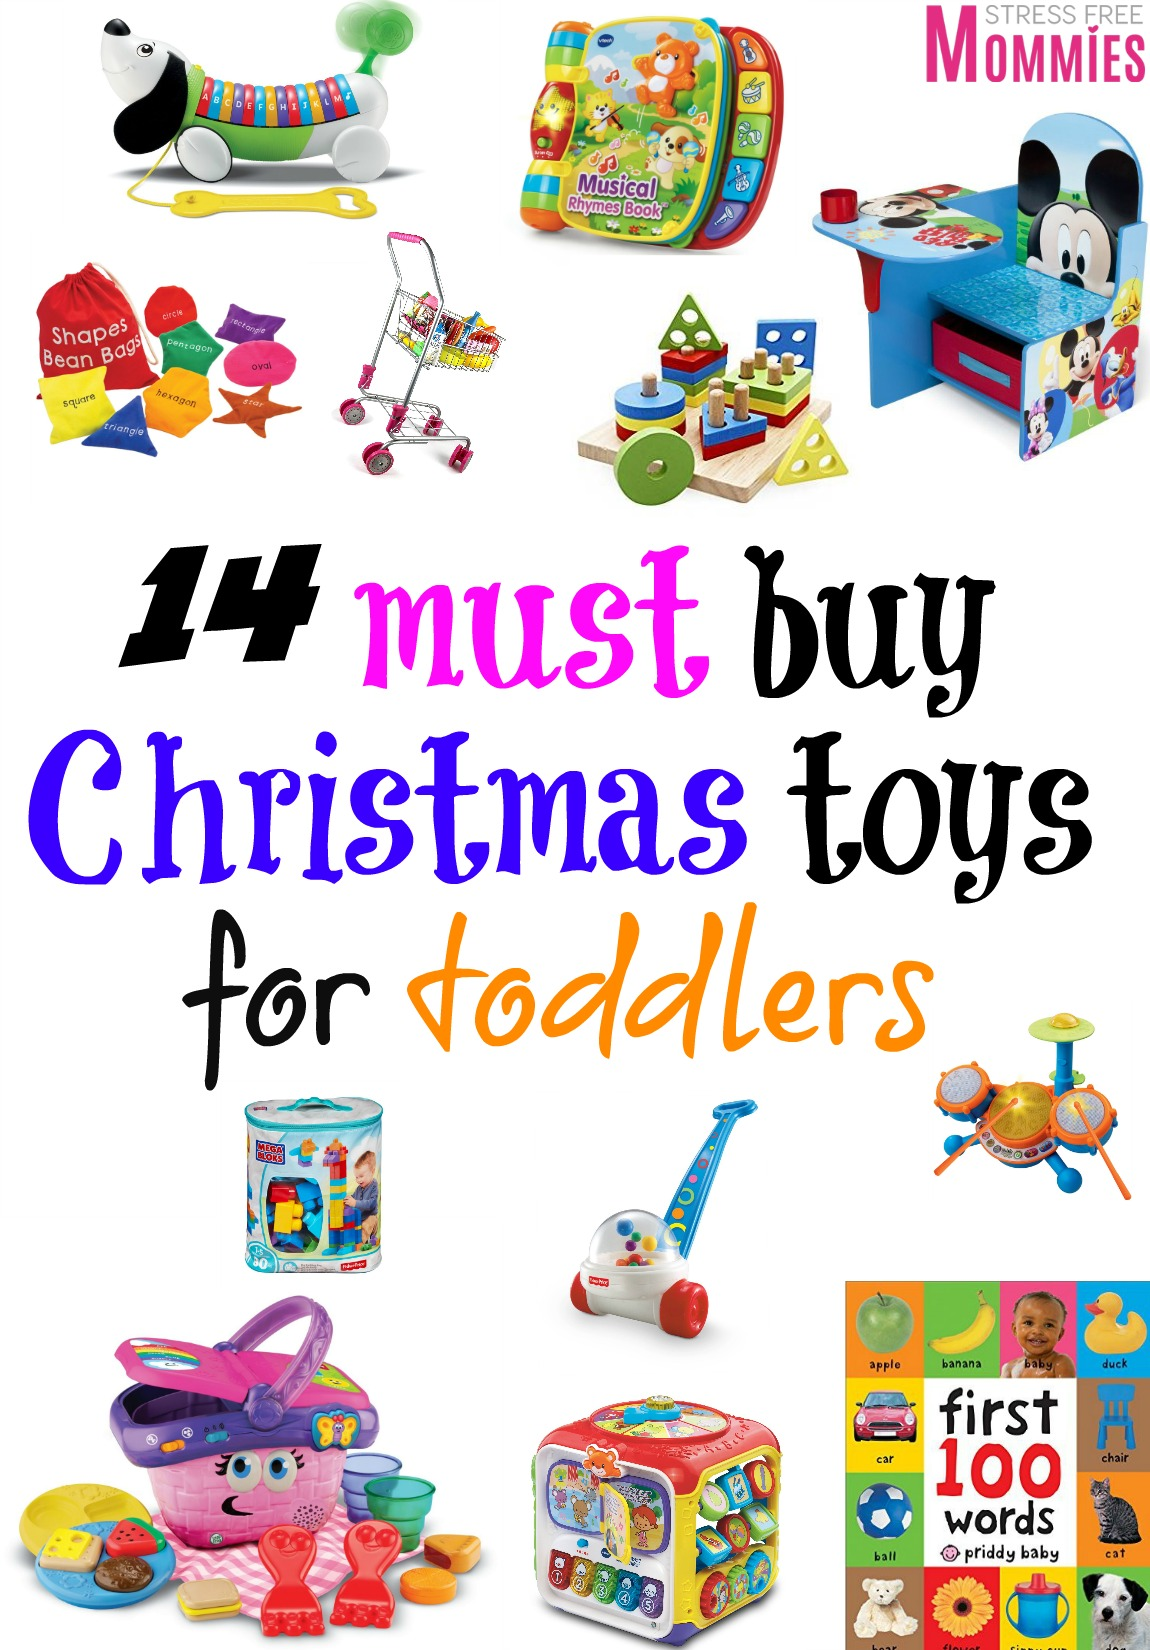 14 fun must buy christmas toys for toddlers stress free mommies - Christmas Toys For Toddlers